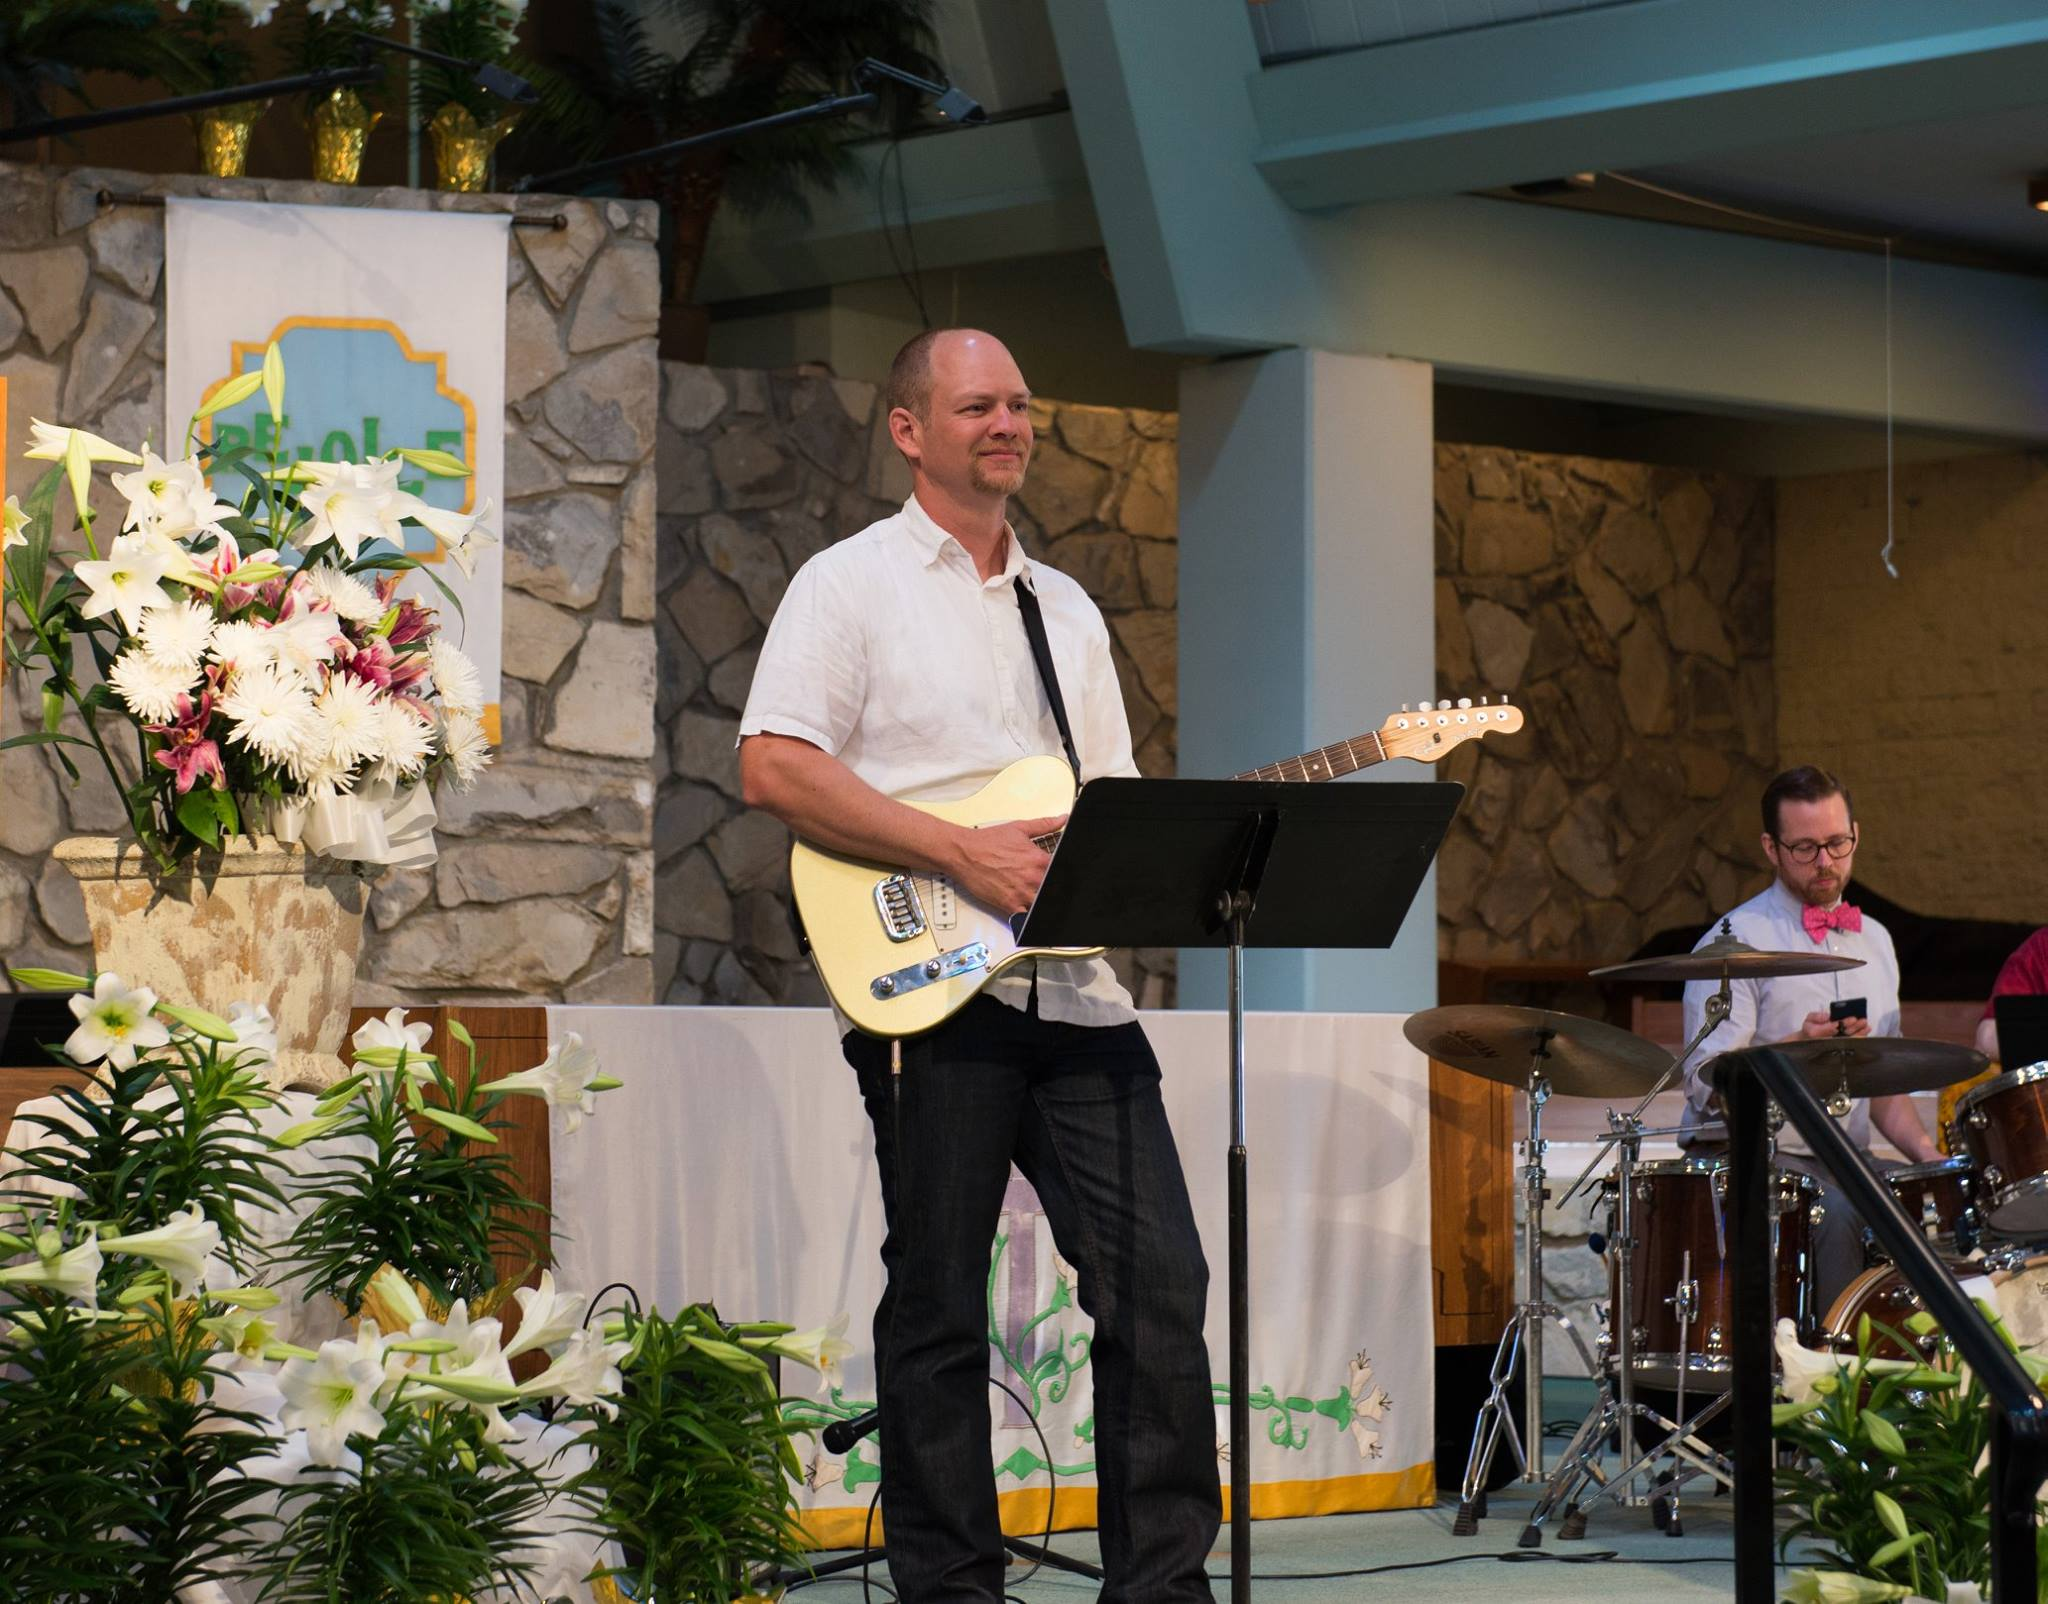 dan bolton on guitar easter2015.jpg